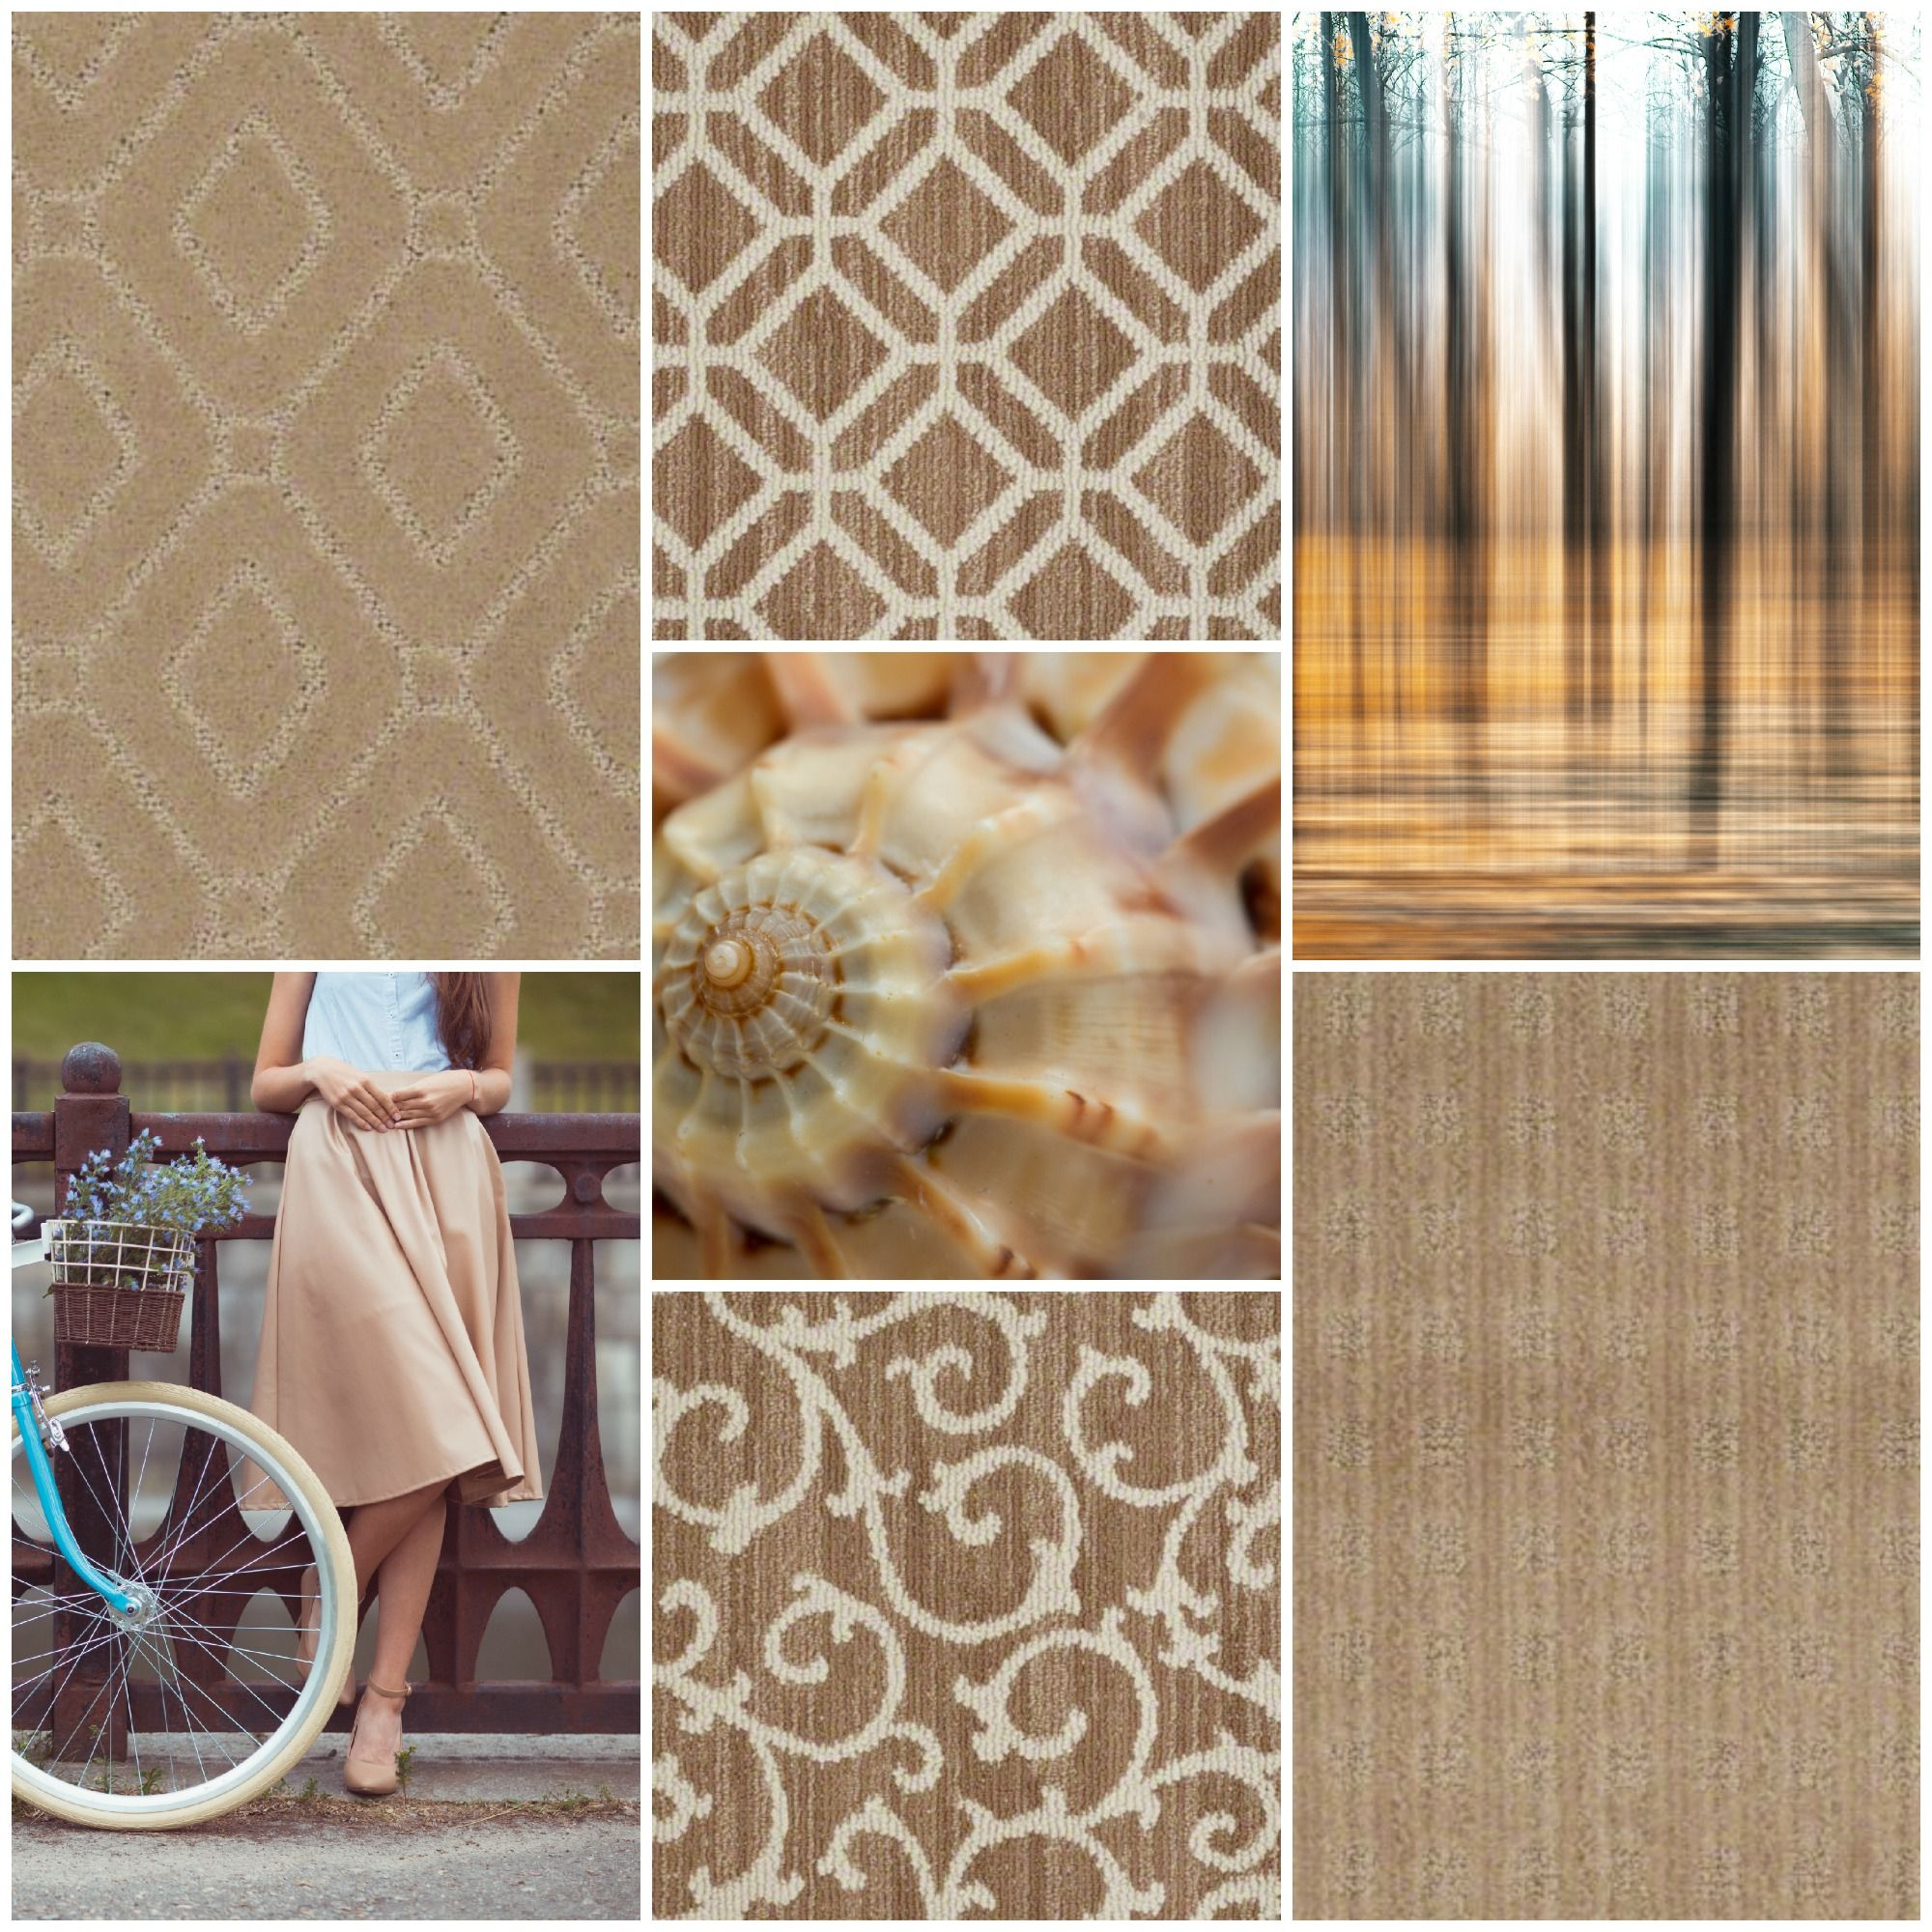 Some Great Neutral Tones From Tuftex Carpets Of California Landers Premier Flooring In Austin Texas Sells With Images Stair Runner Carpet Painting Carpet Rugs On Carpet